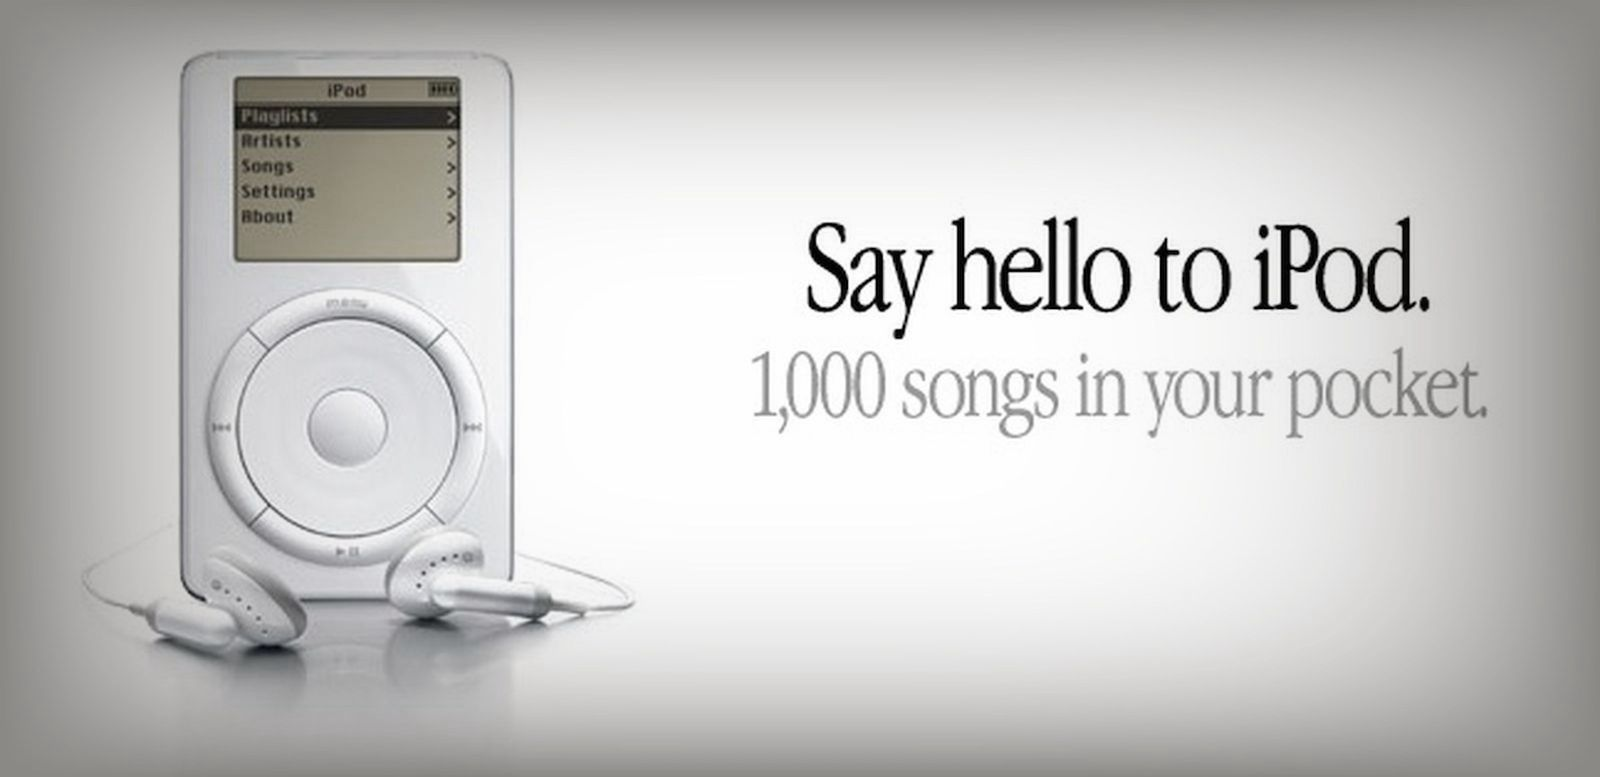 This Week Marks the 20th Anniversary of the iPod and 30th Anniversary of the PowerBook